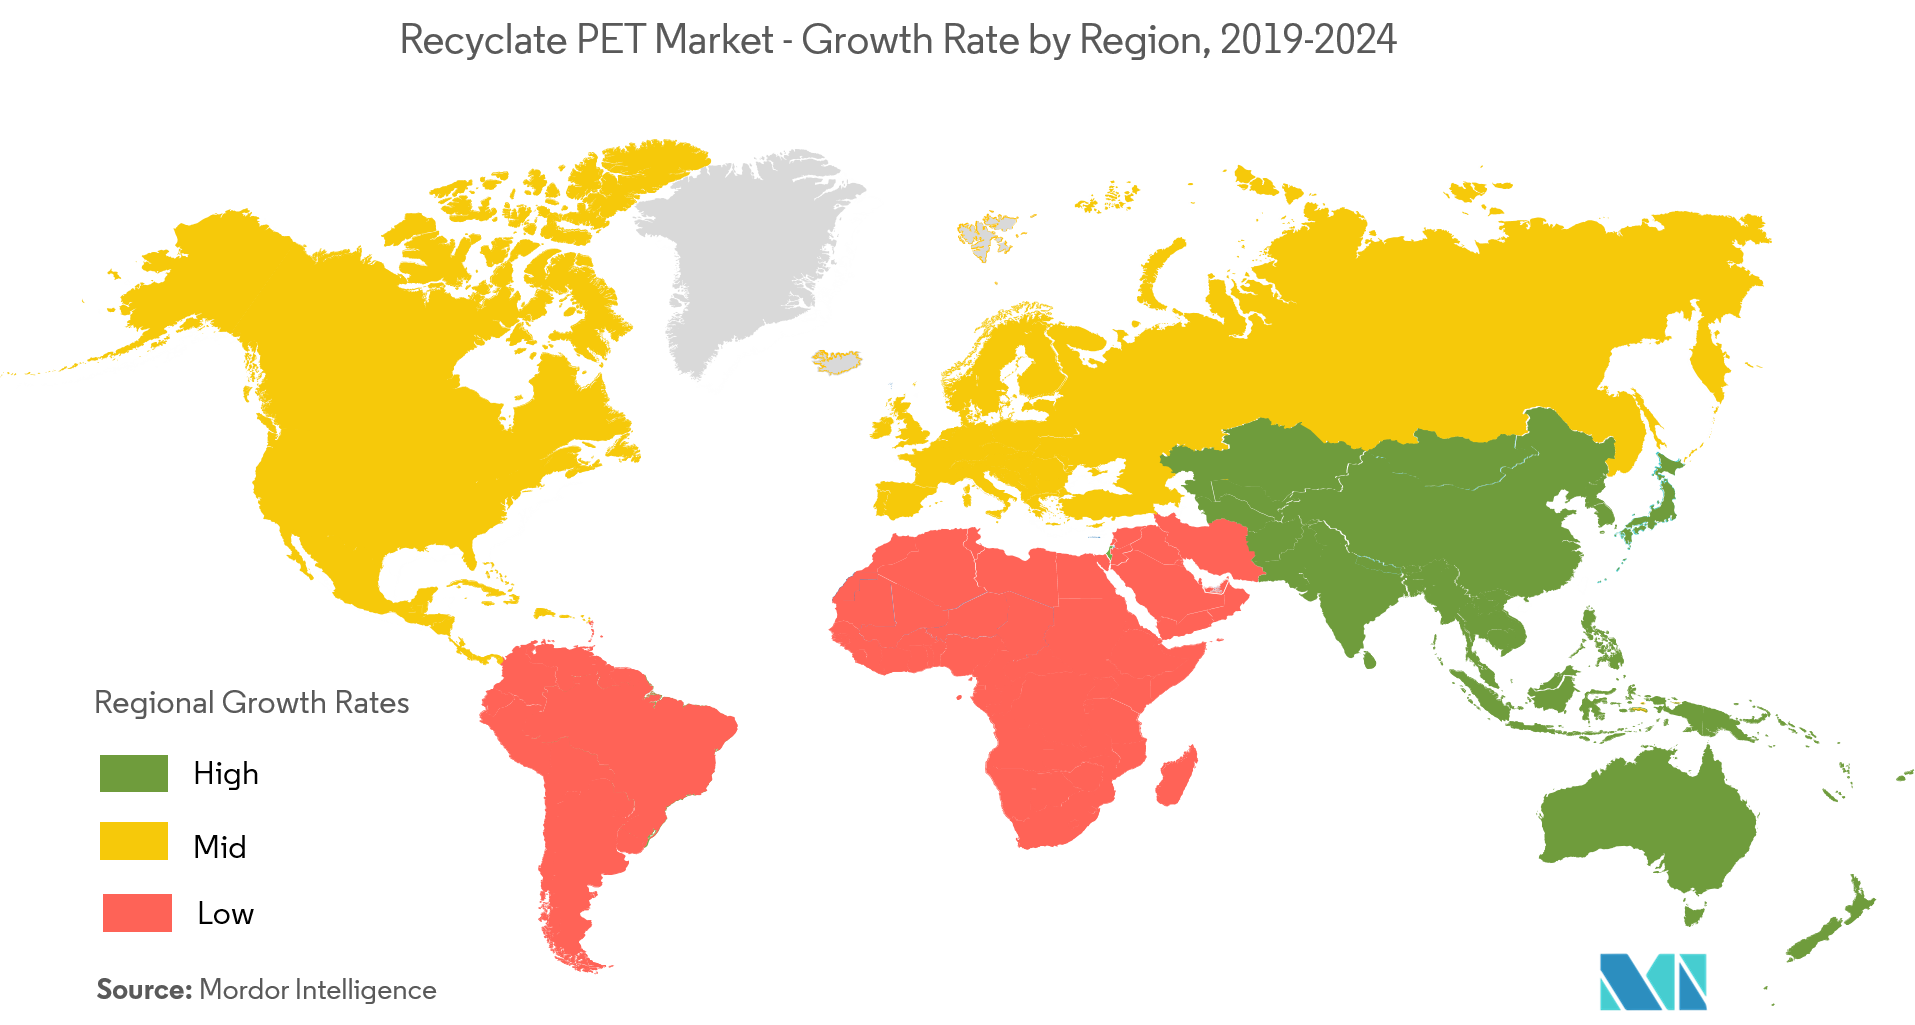 Recyclate PET Market - Regional Trends